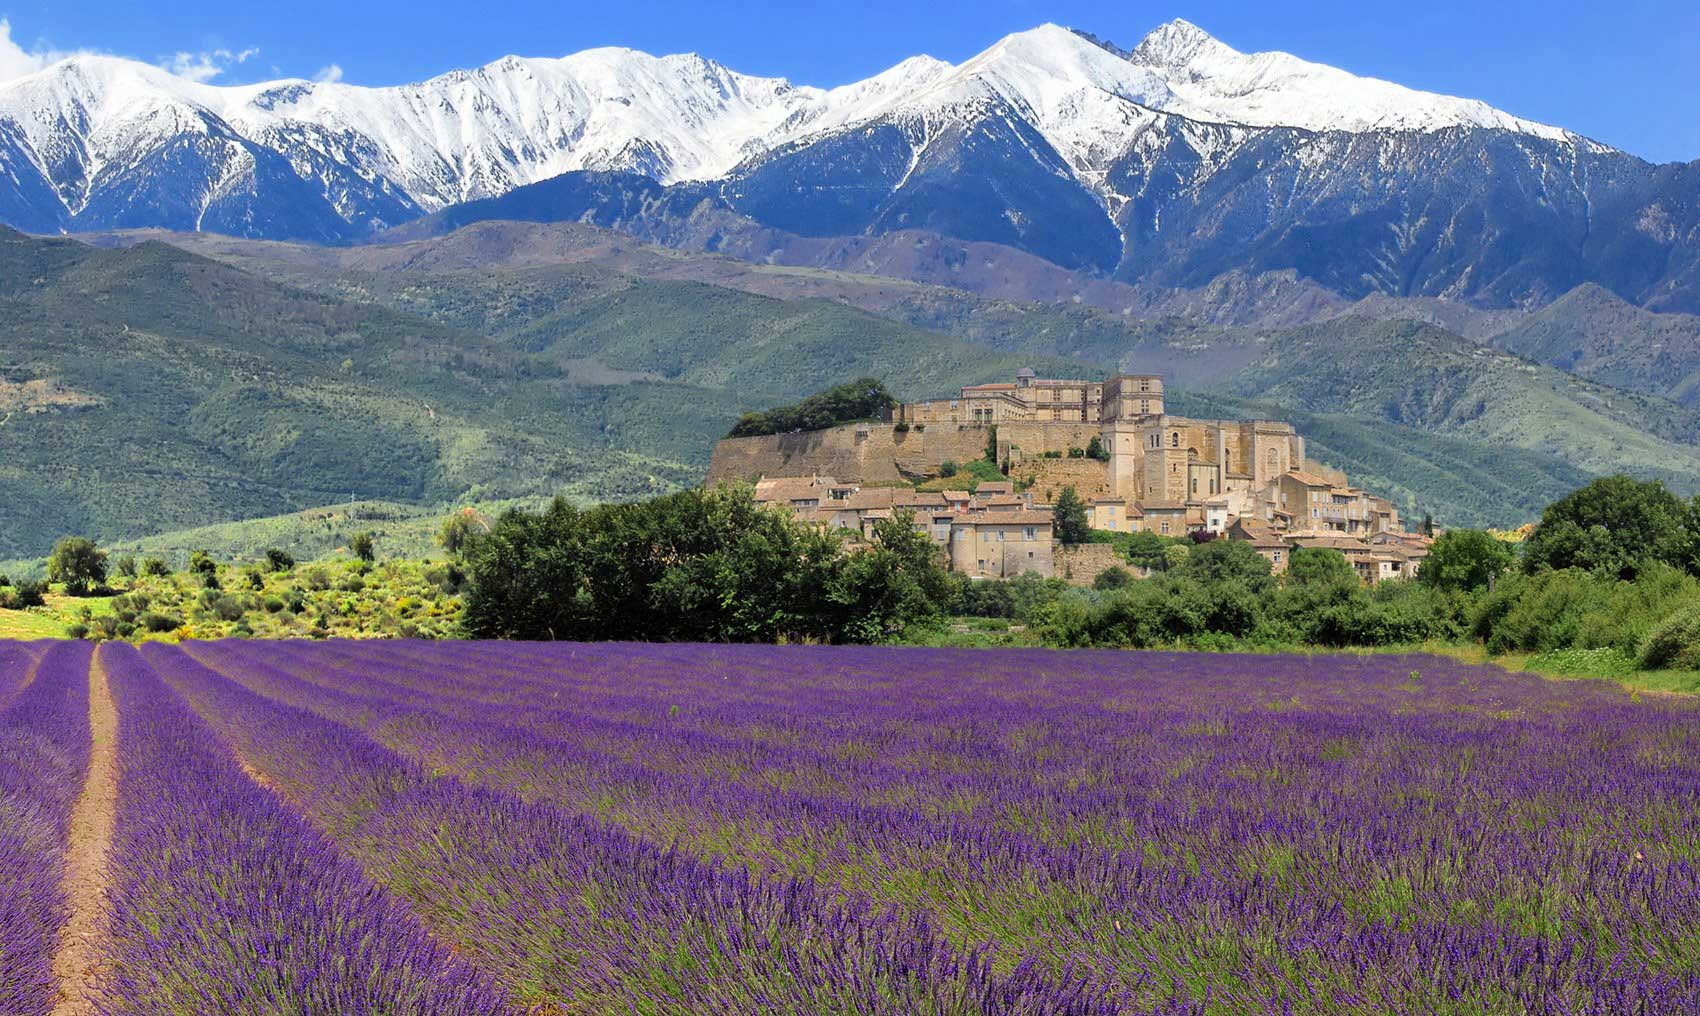 Crédito foto: https://www.winerist.com/tours/provence/private-full-day-wine-tour-in-provence